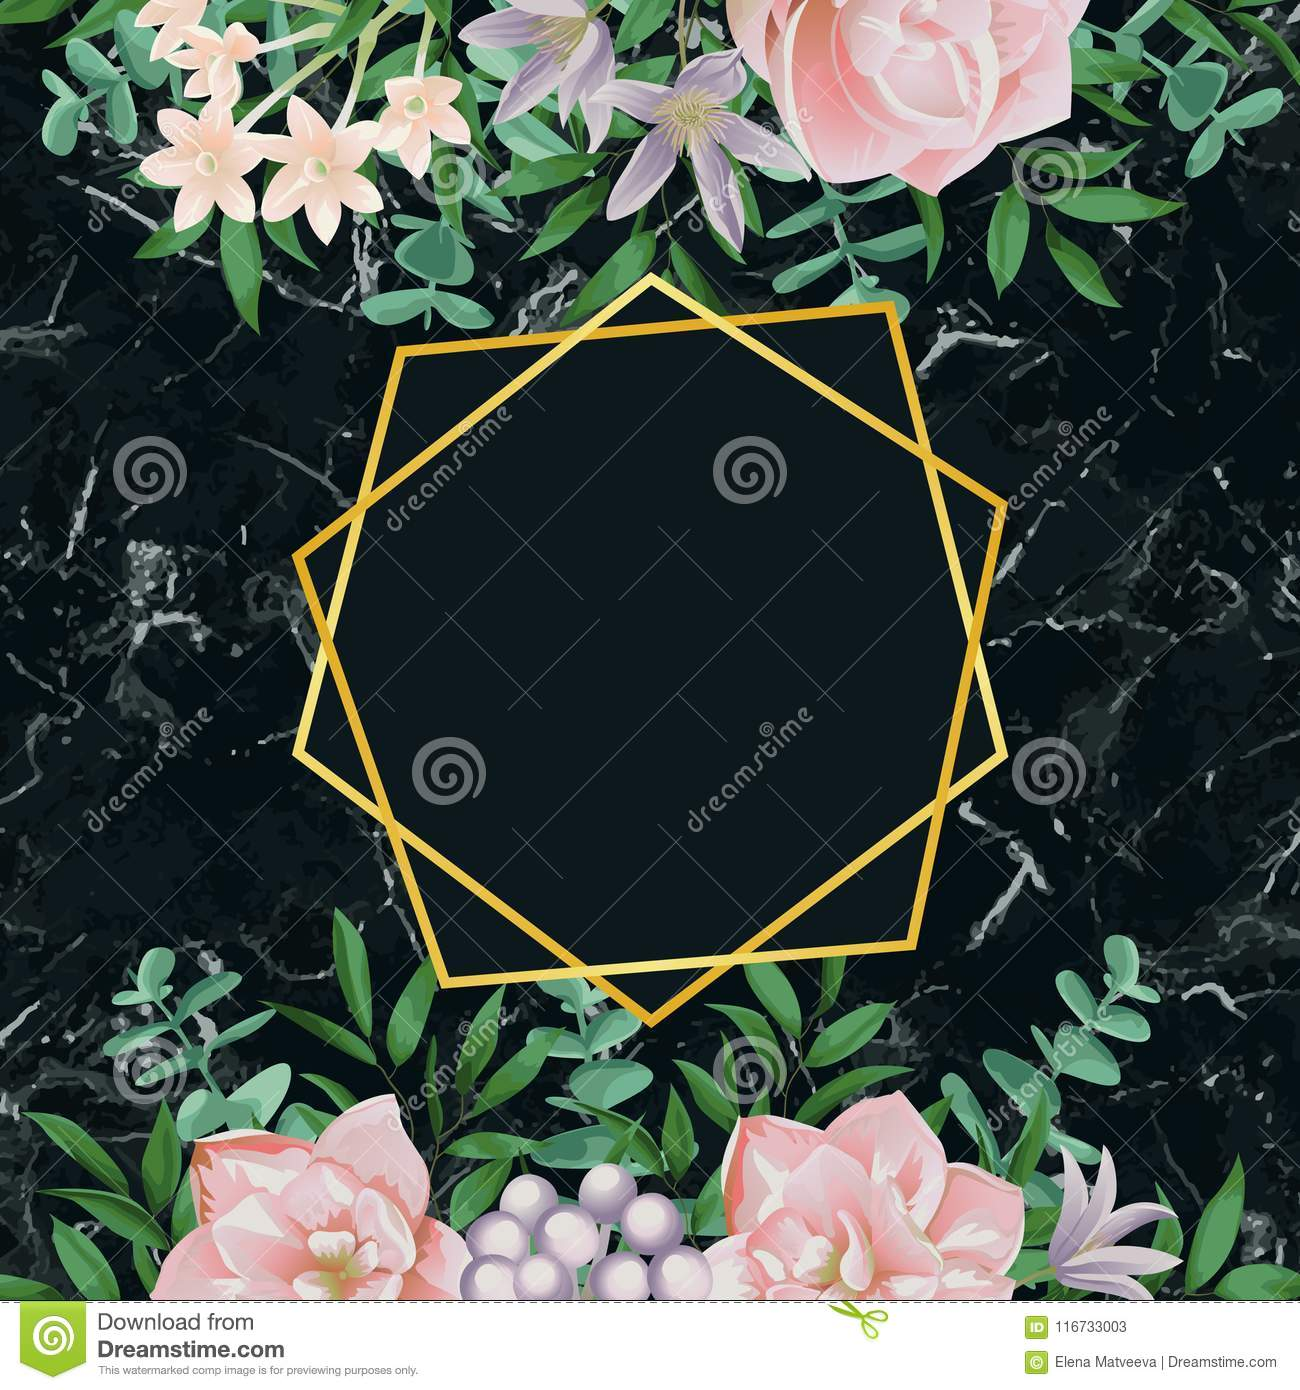 Luxury Template With Pink Flowers On Black Marble Stock Vector -  Illustration of leaf, elegant: 116733003